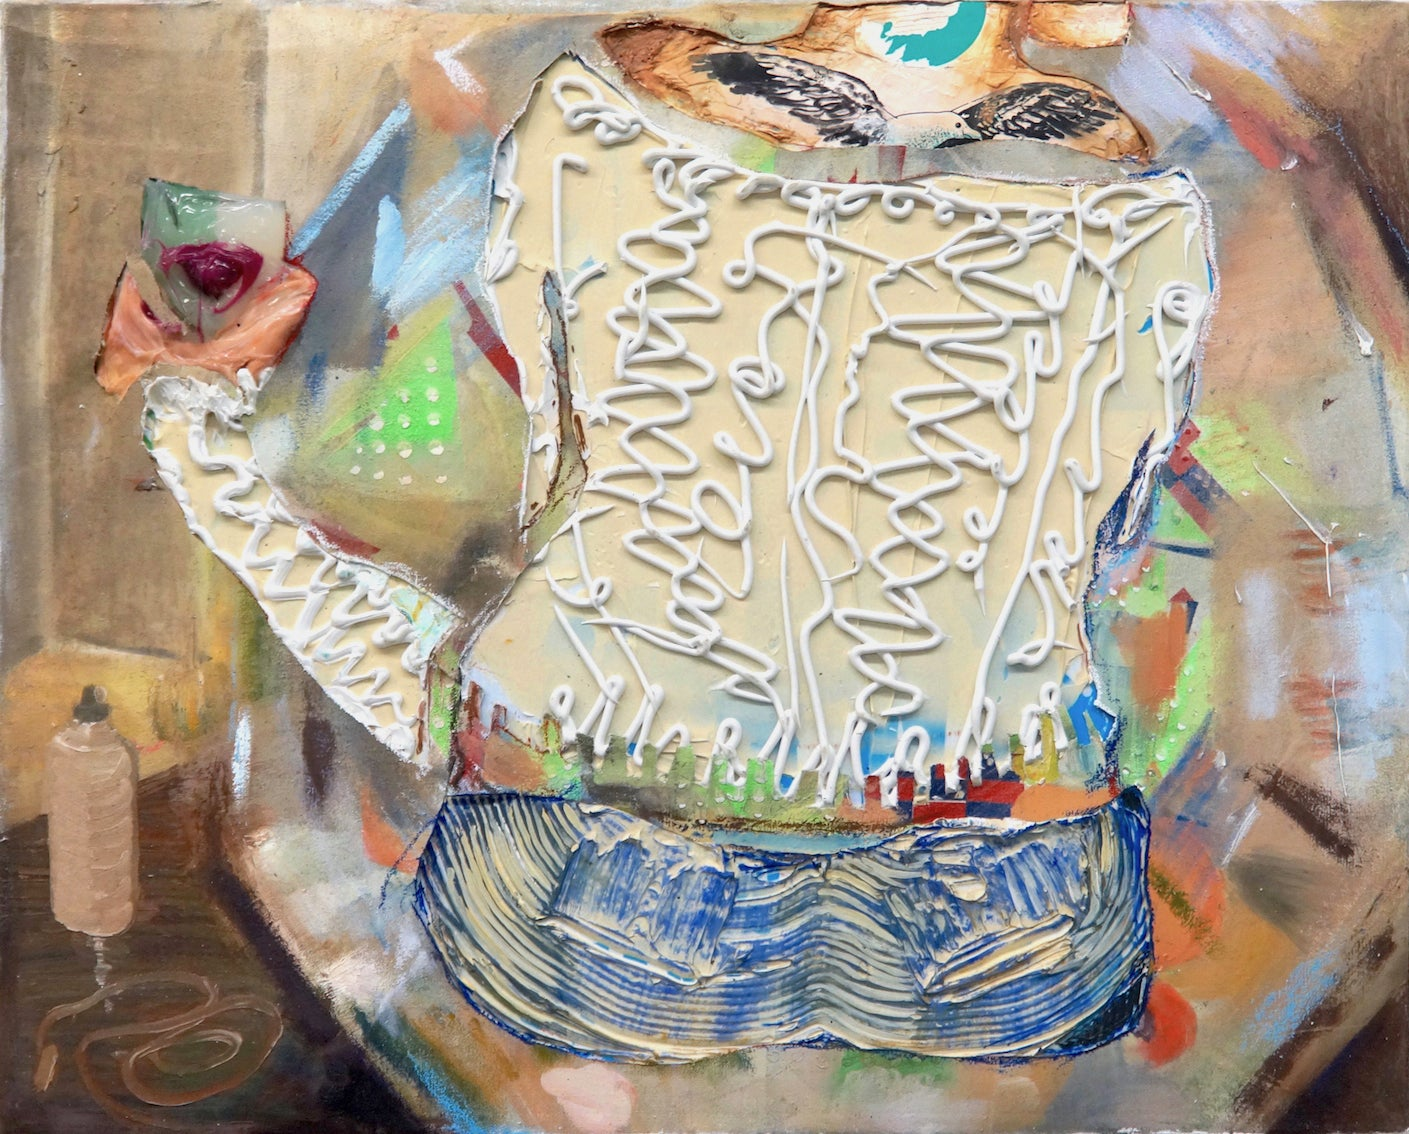 Girl with Seagull Tattoo - abstract figurative, textured painting/mixed media